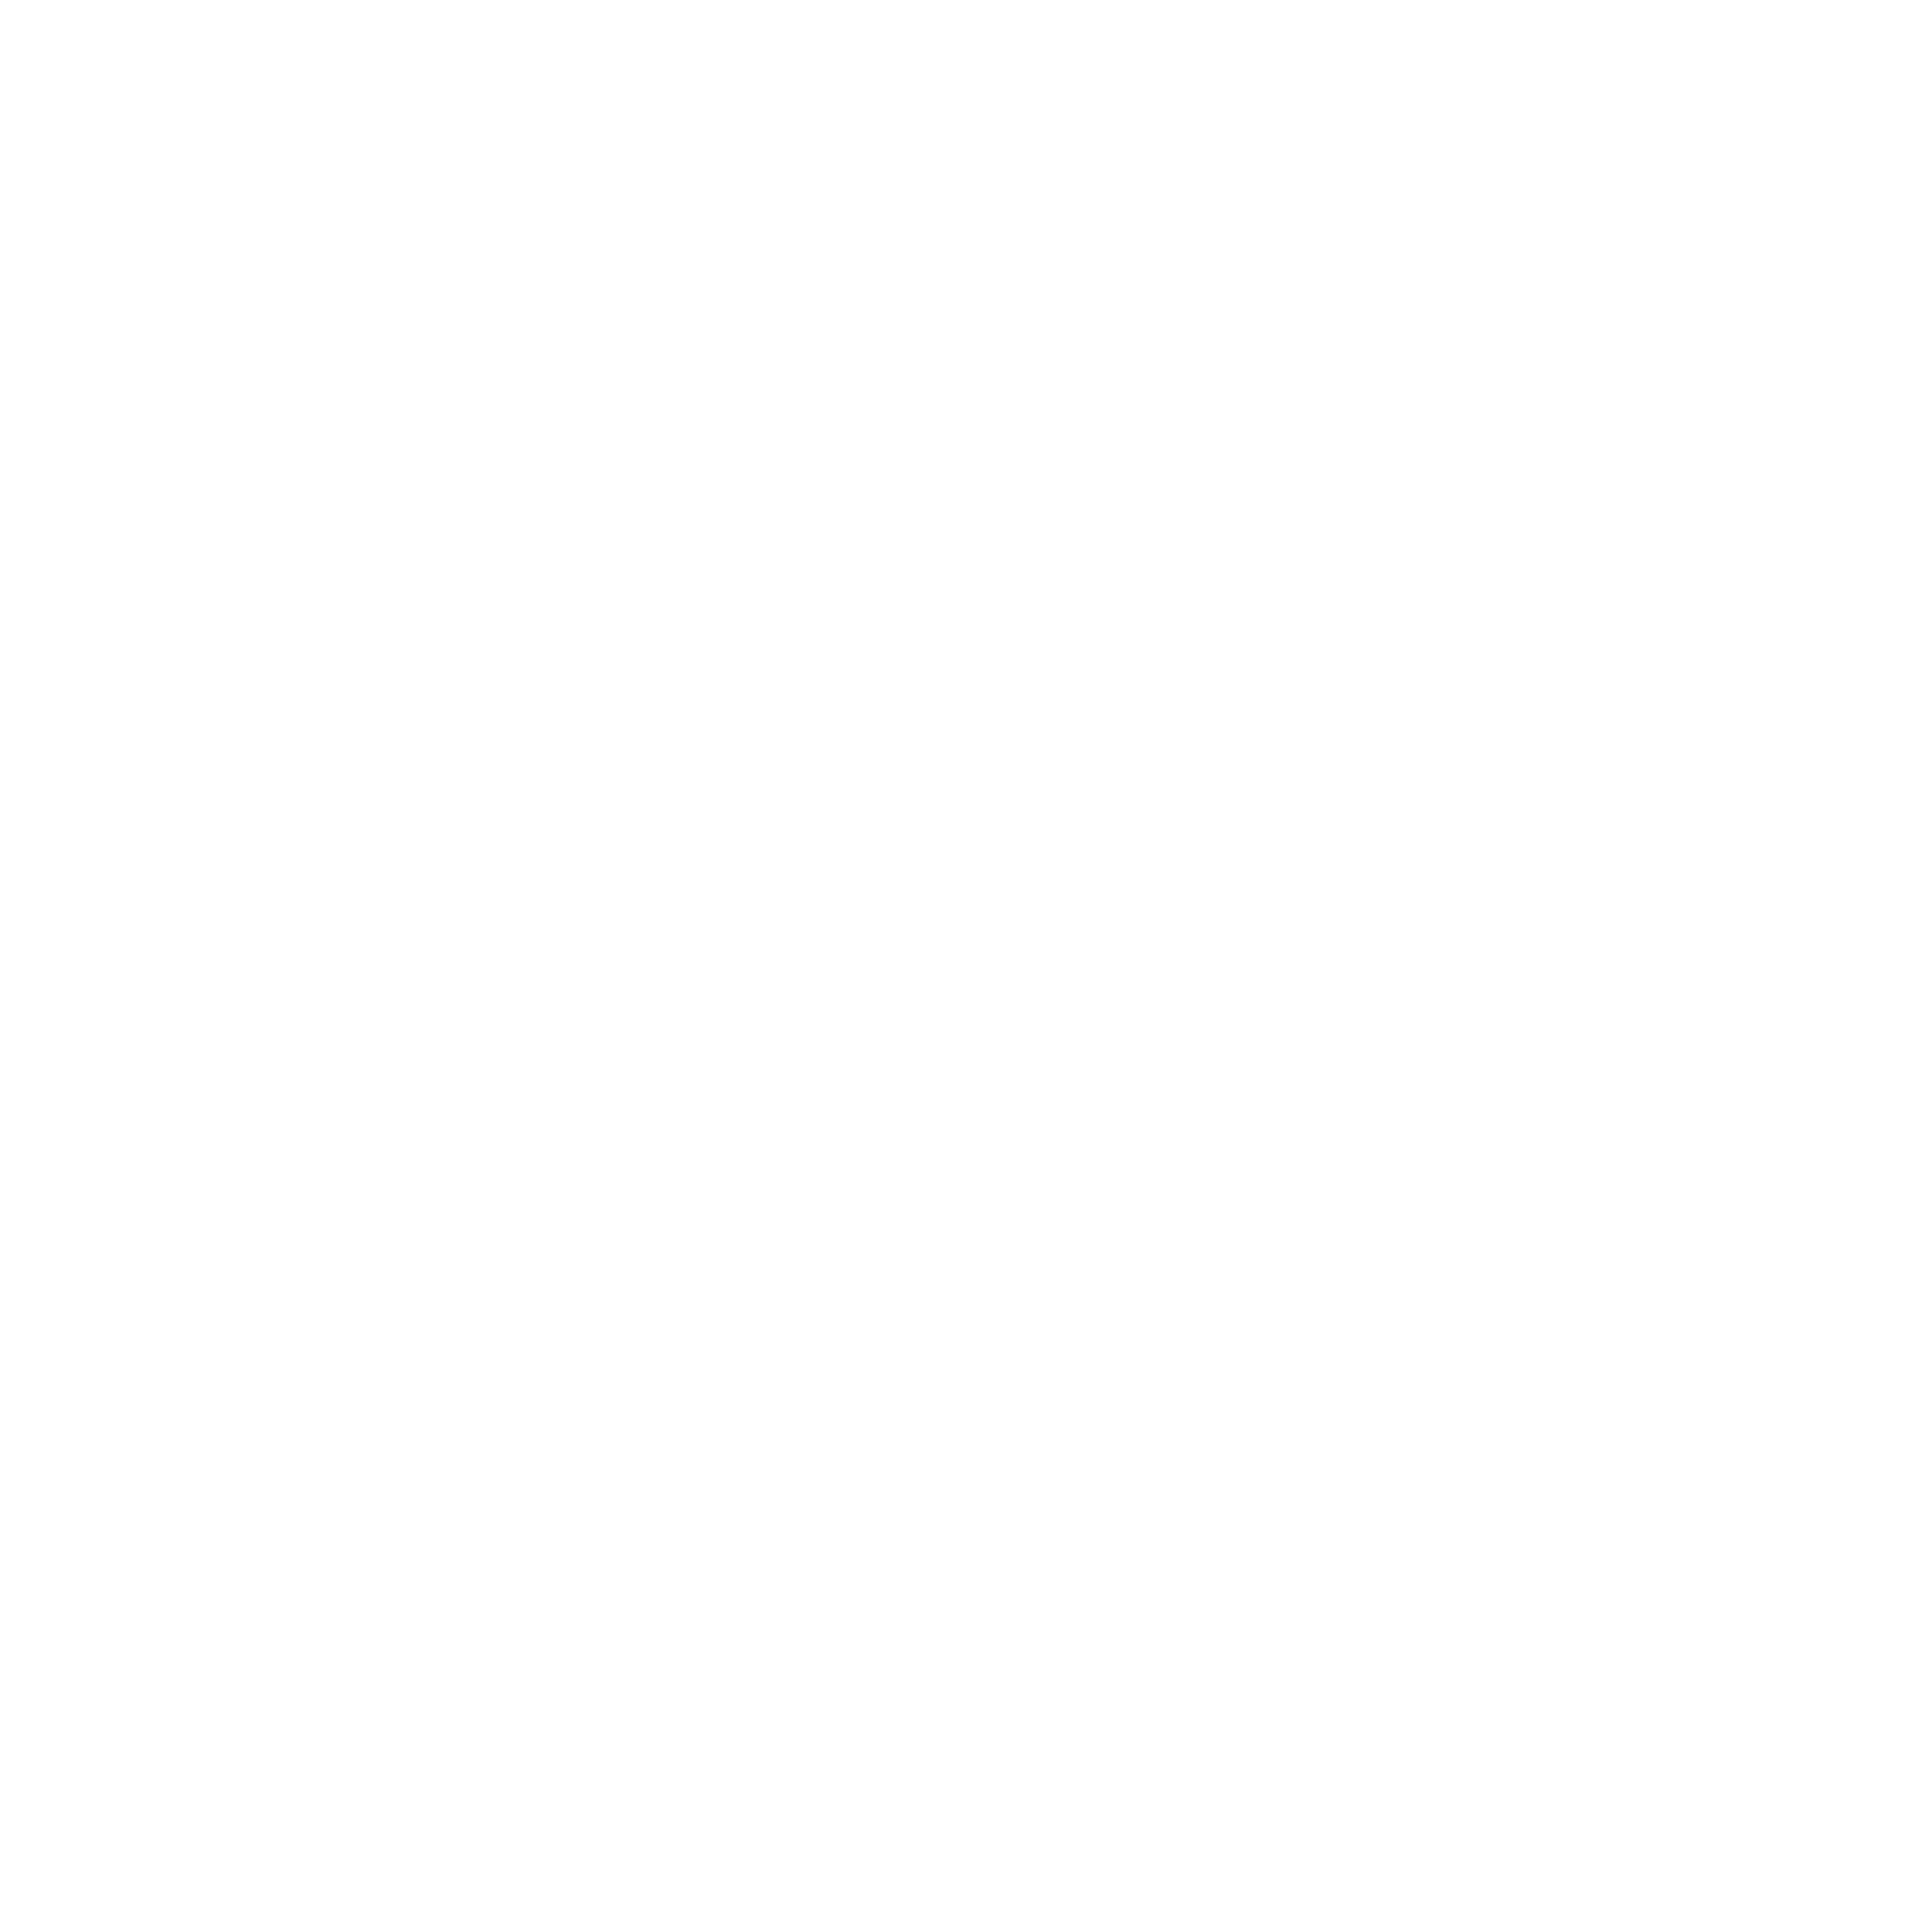 The Eden Logo featuring the silhouette of a bear with a mountain in the background.